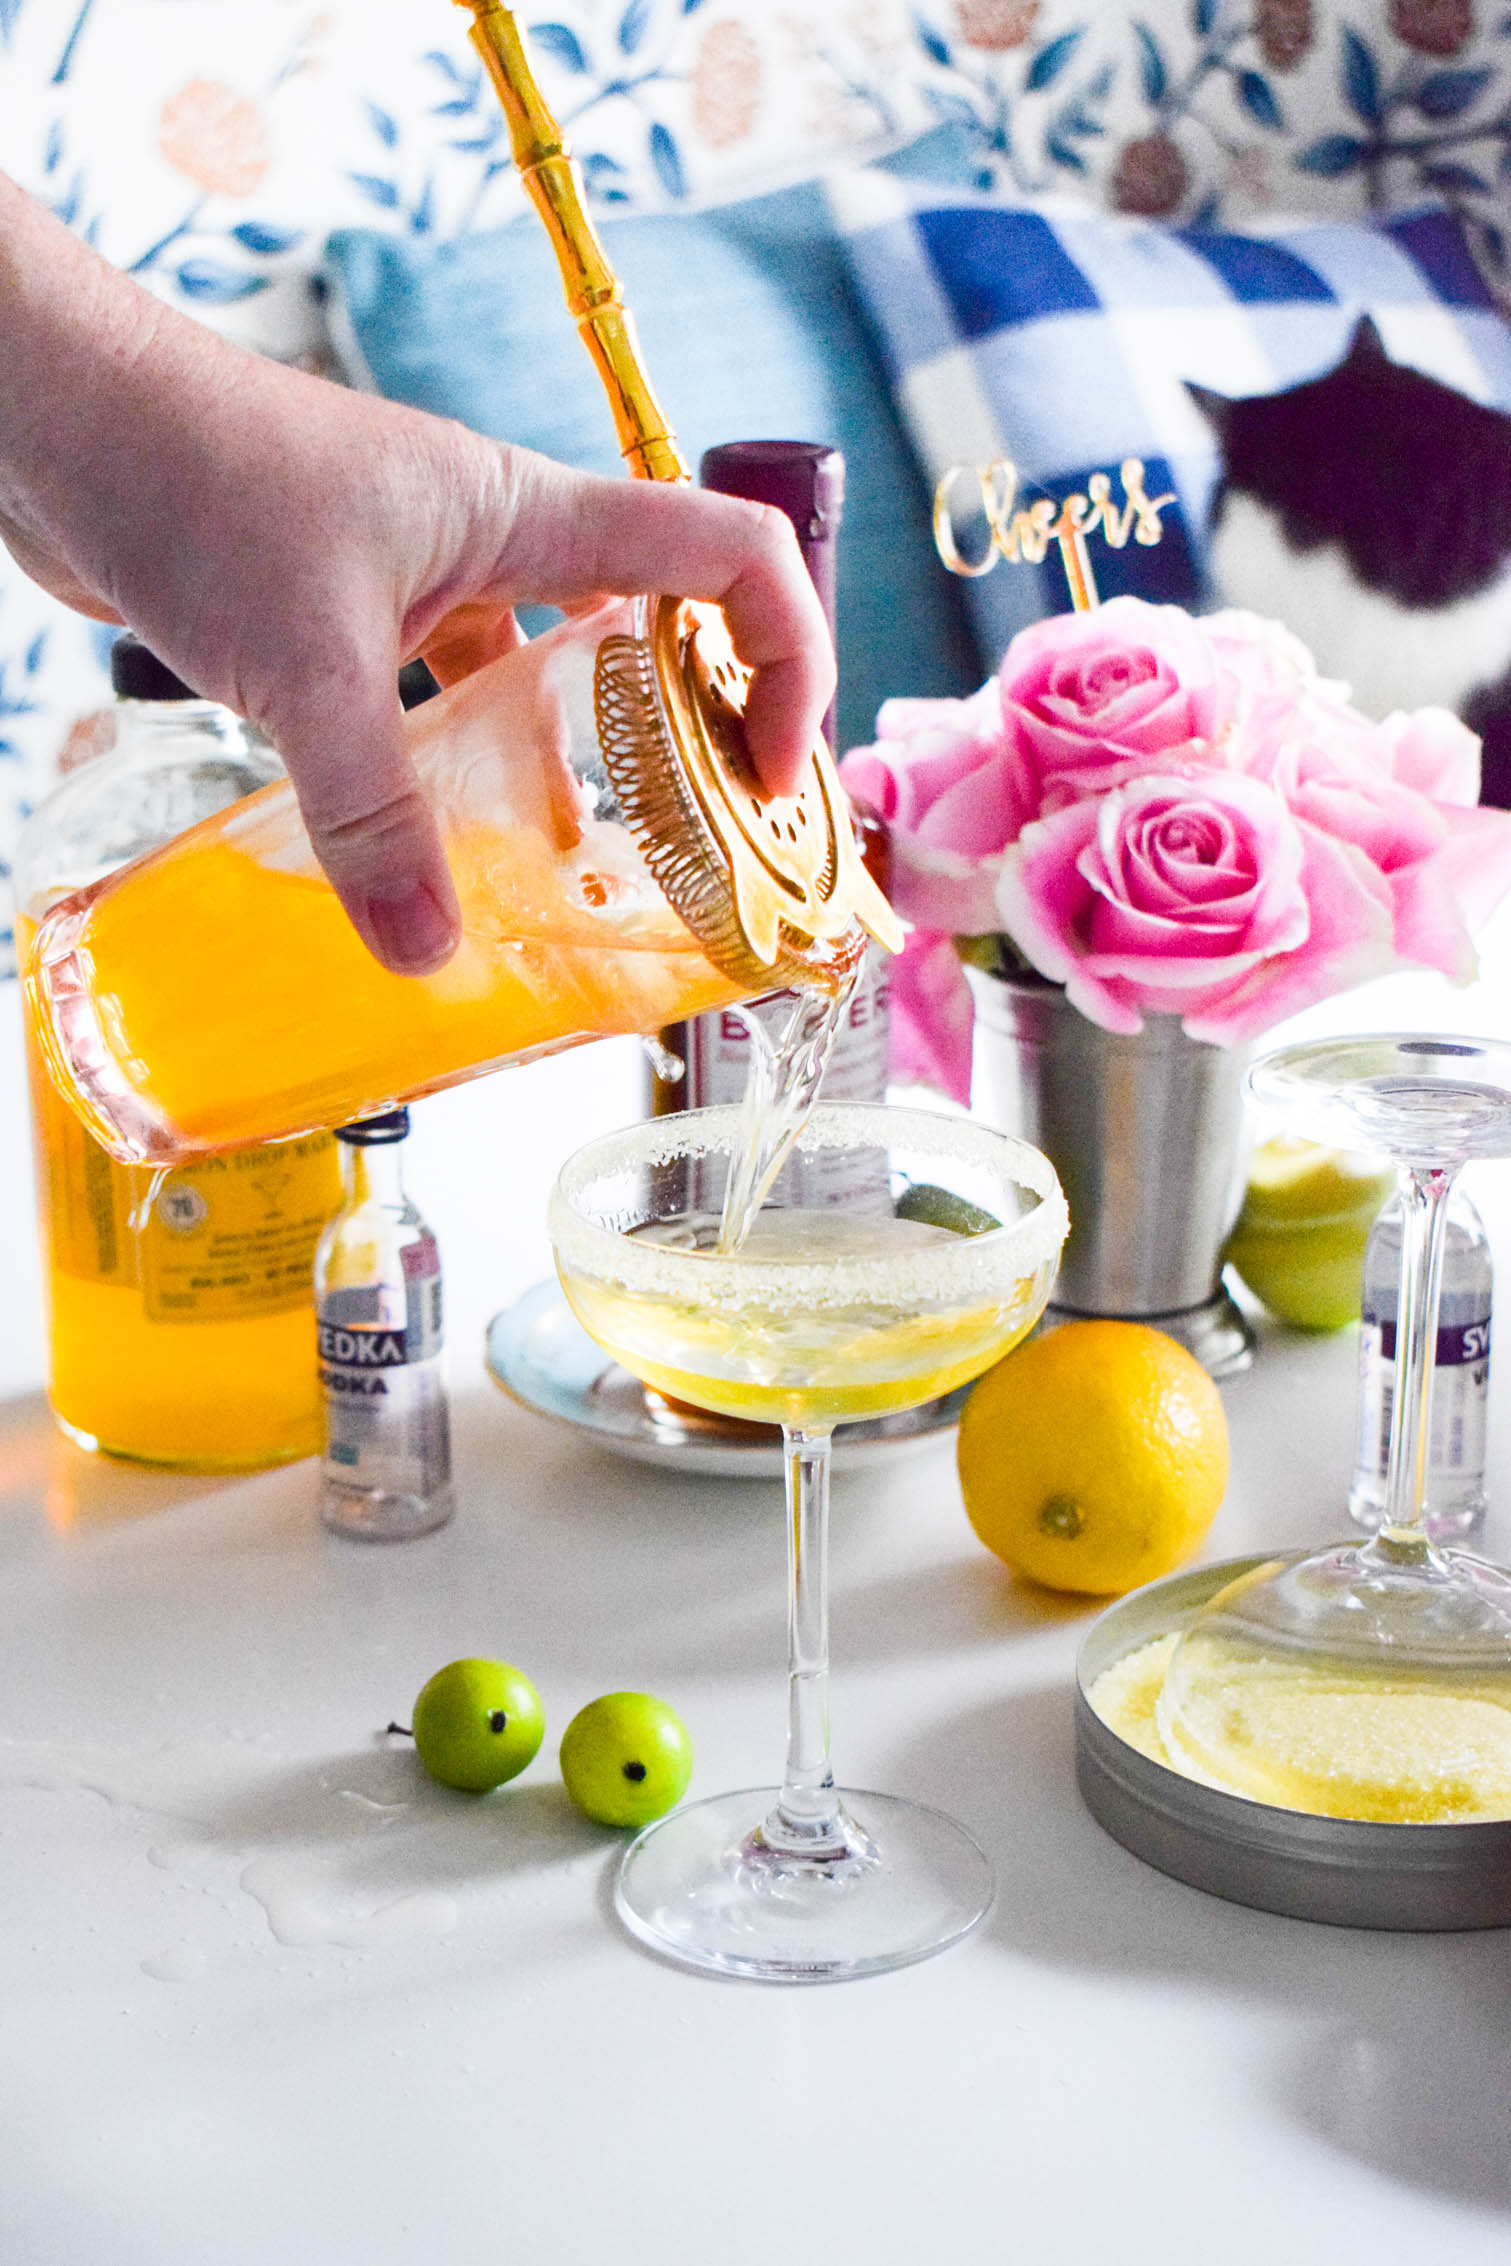 Making a lemon drop martini is easier than you'd think with Stirrings' Lemon Drop cocktail mix and rimmer! Grab the recipe on the blog! Including a suggestion for spicing things up with Blood Orange Bitters.